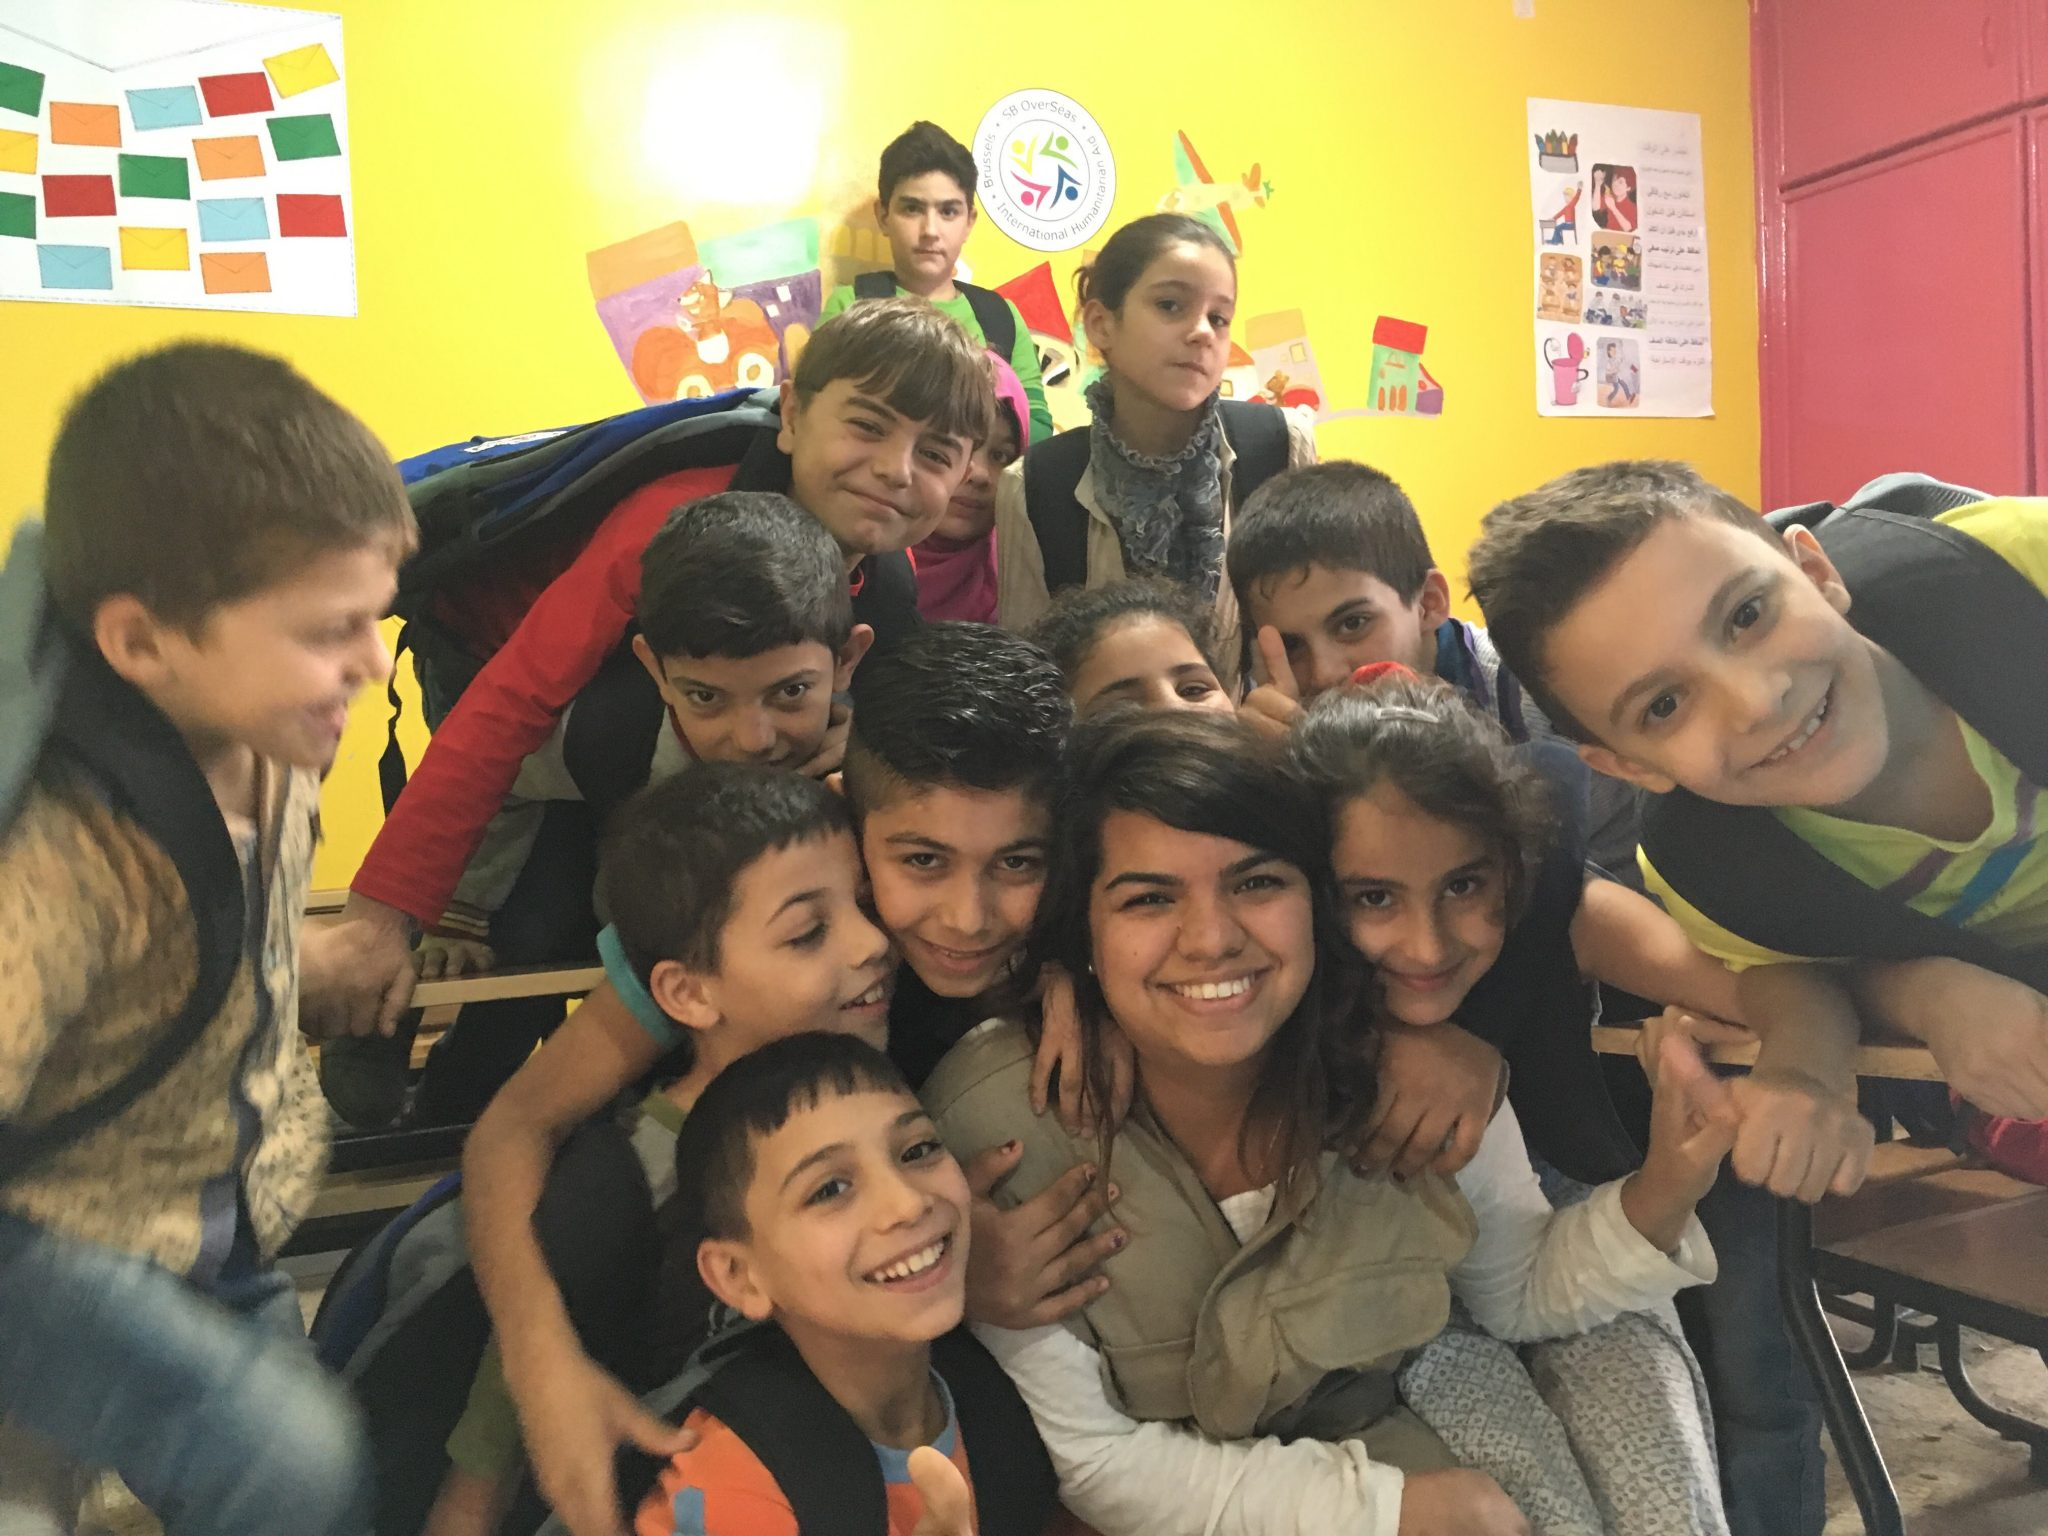 My experience with the children of Bukra Ahla